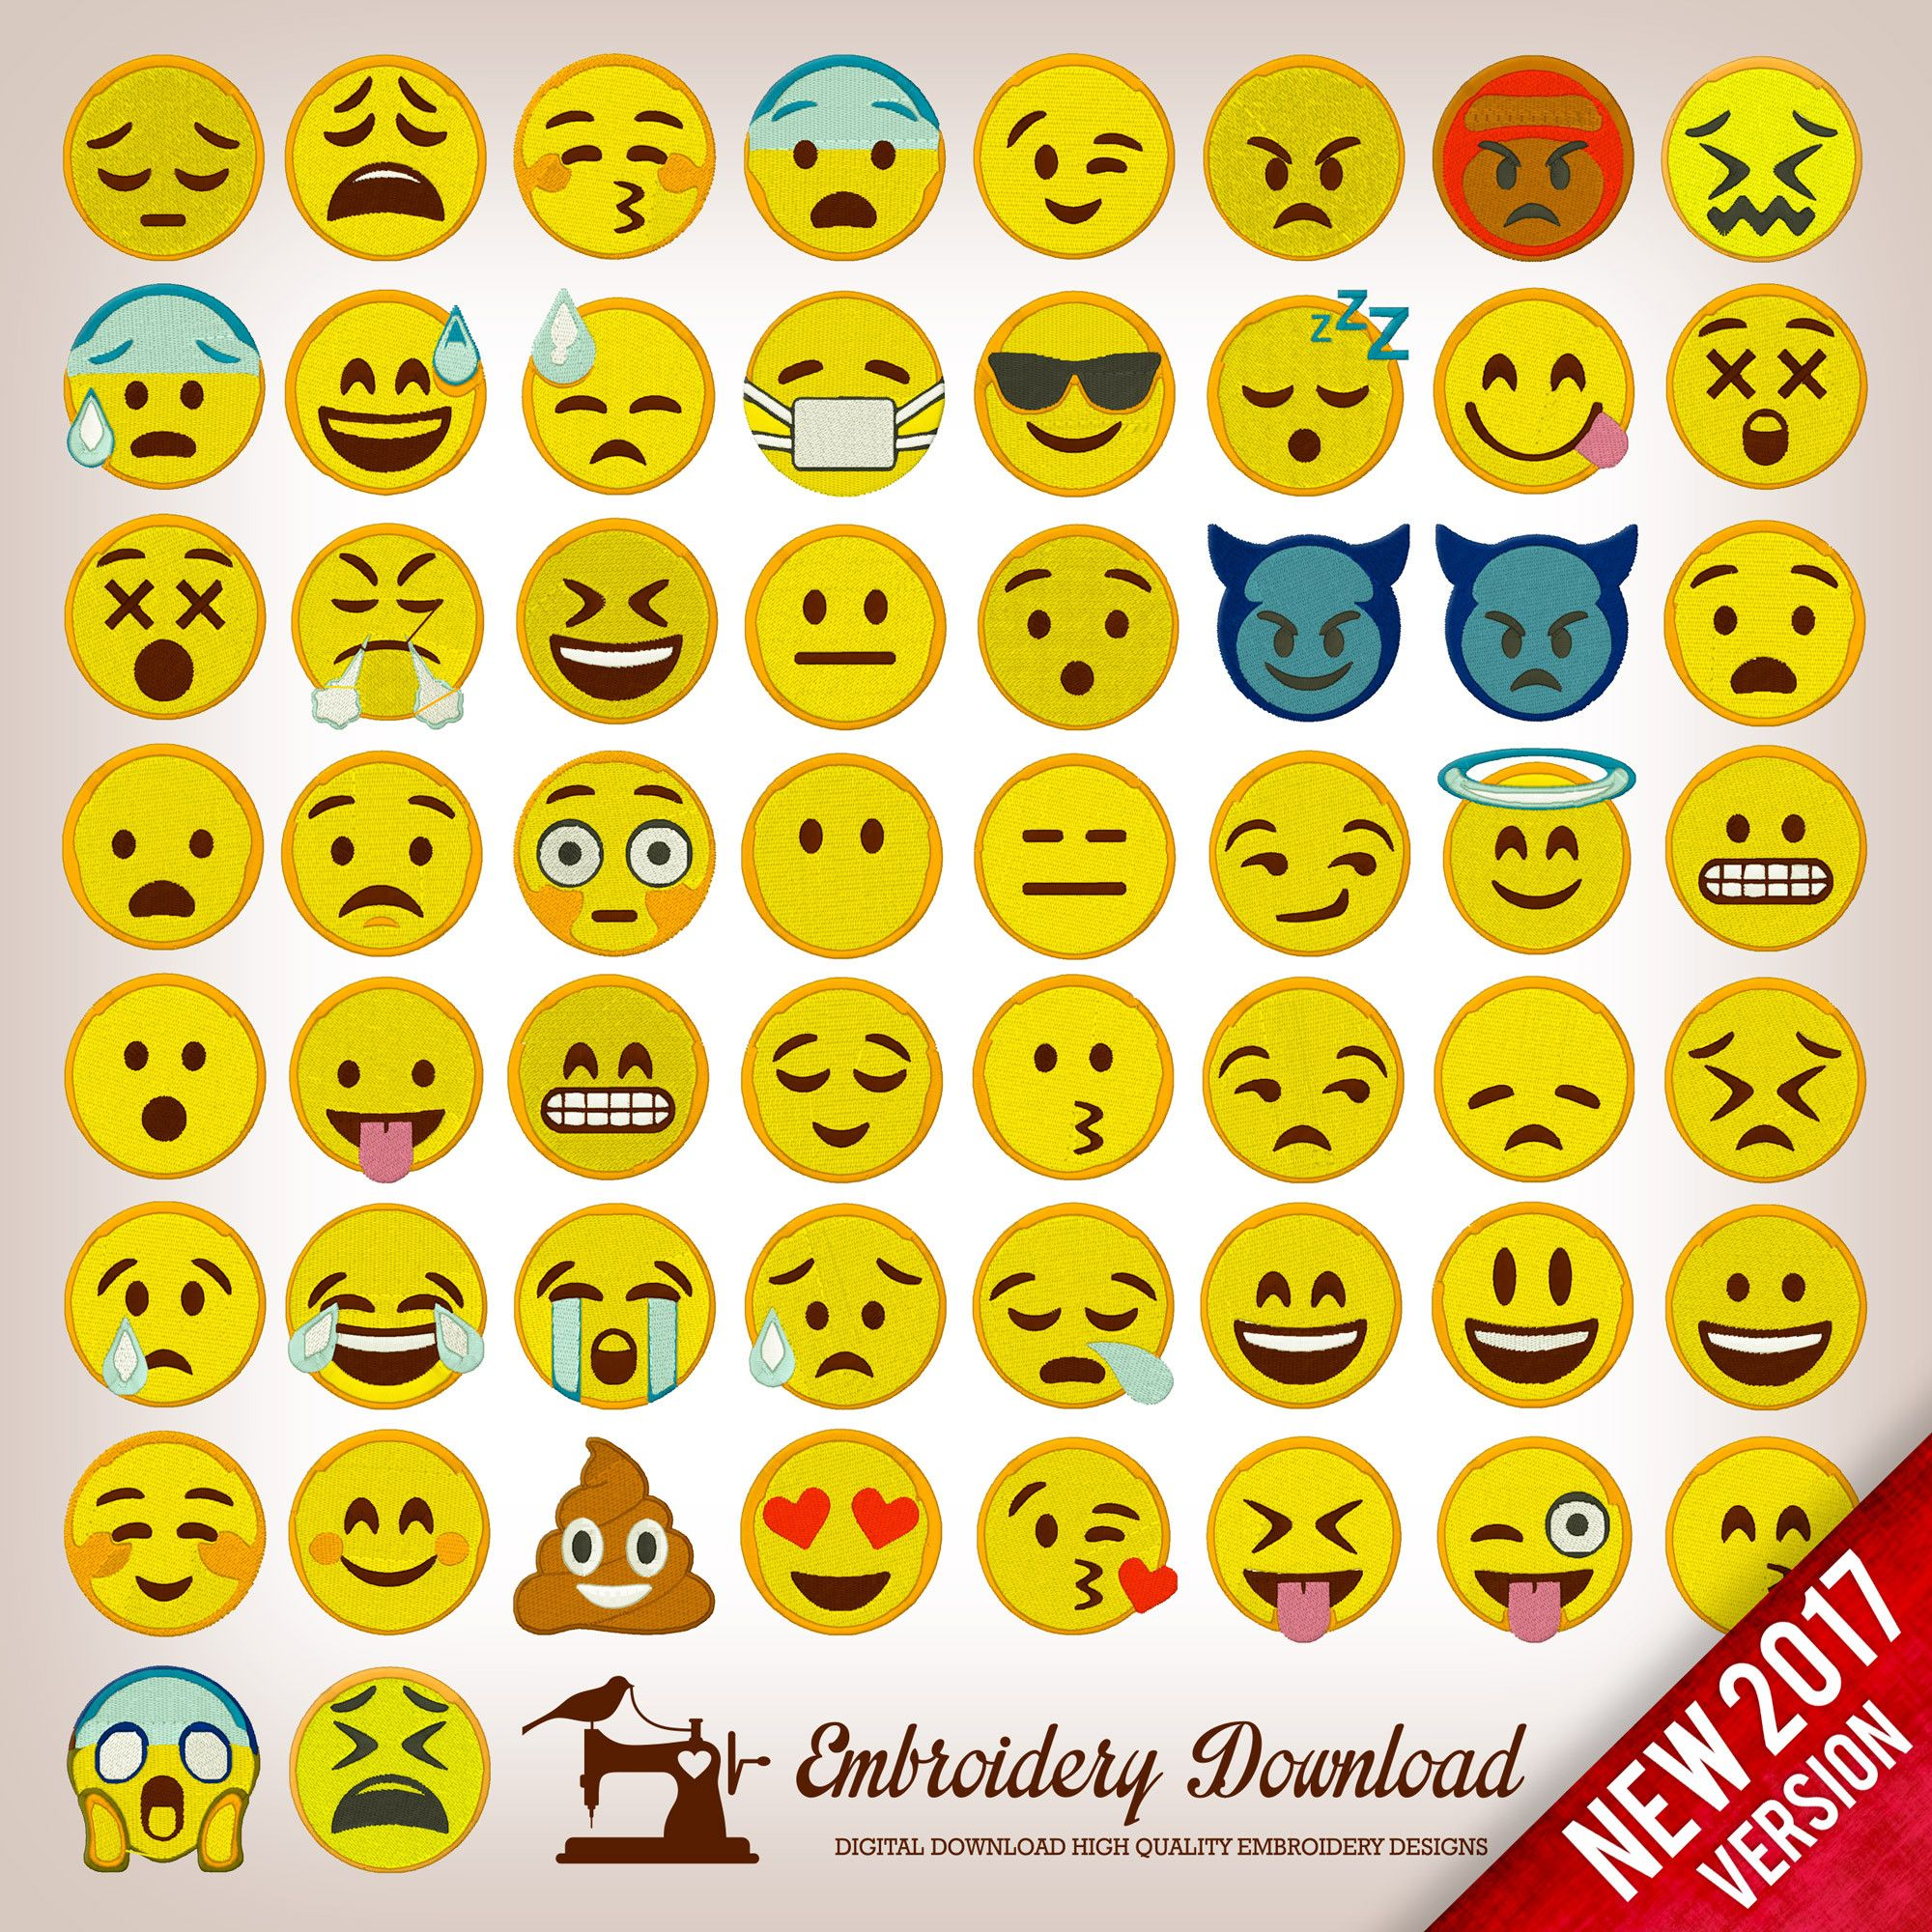 Emoticons Emoji Pack 58 Collection Embroidery design